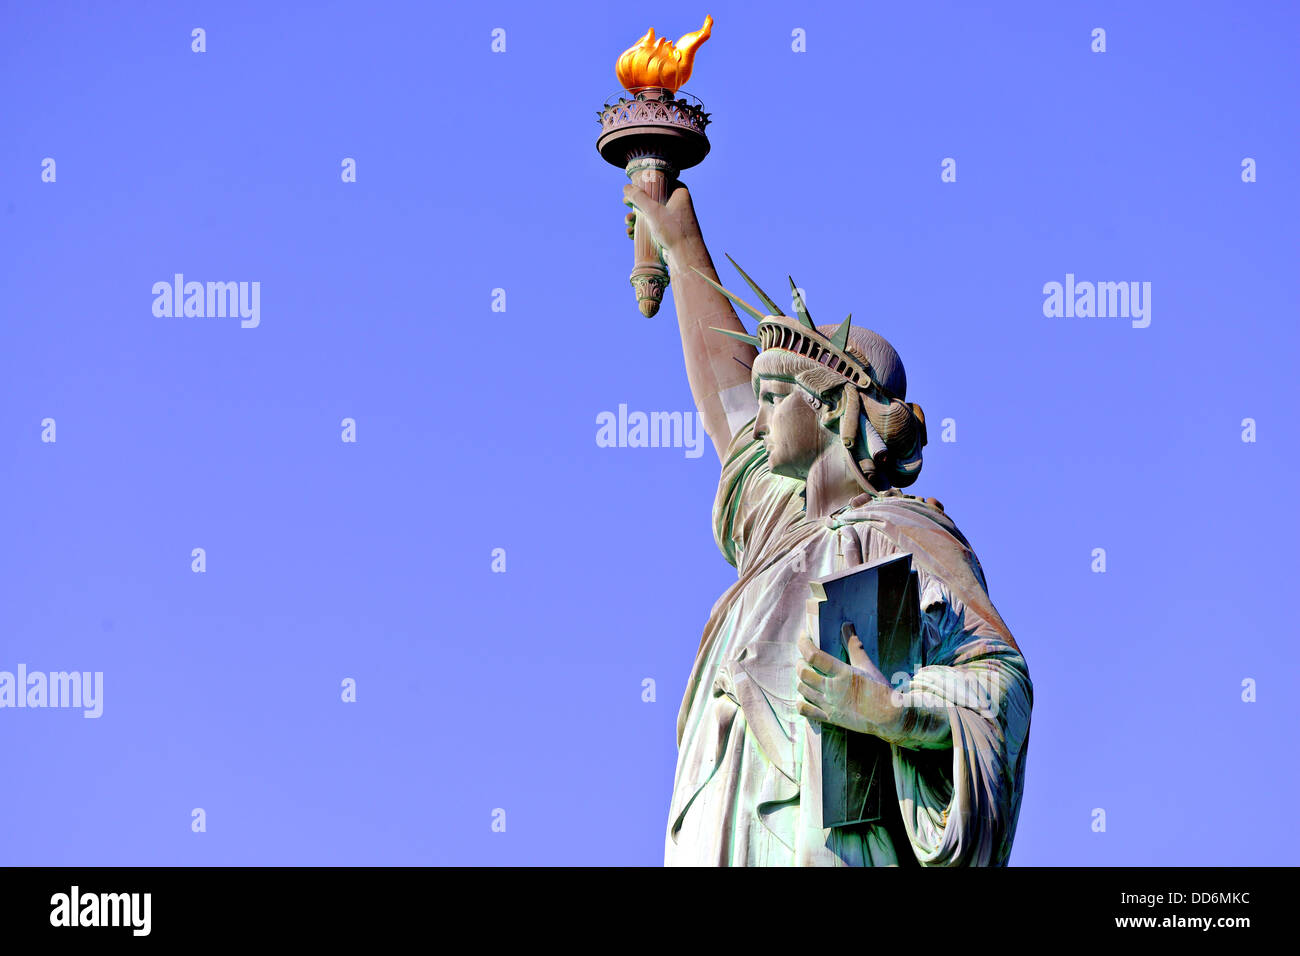 Statue de la Liberté à New York. Photo Stock